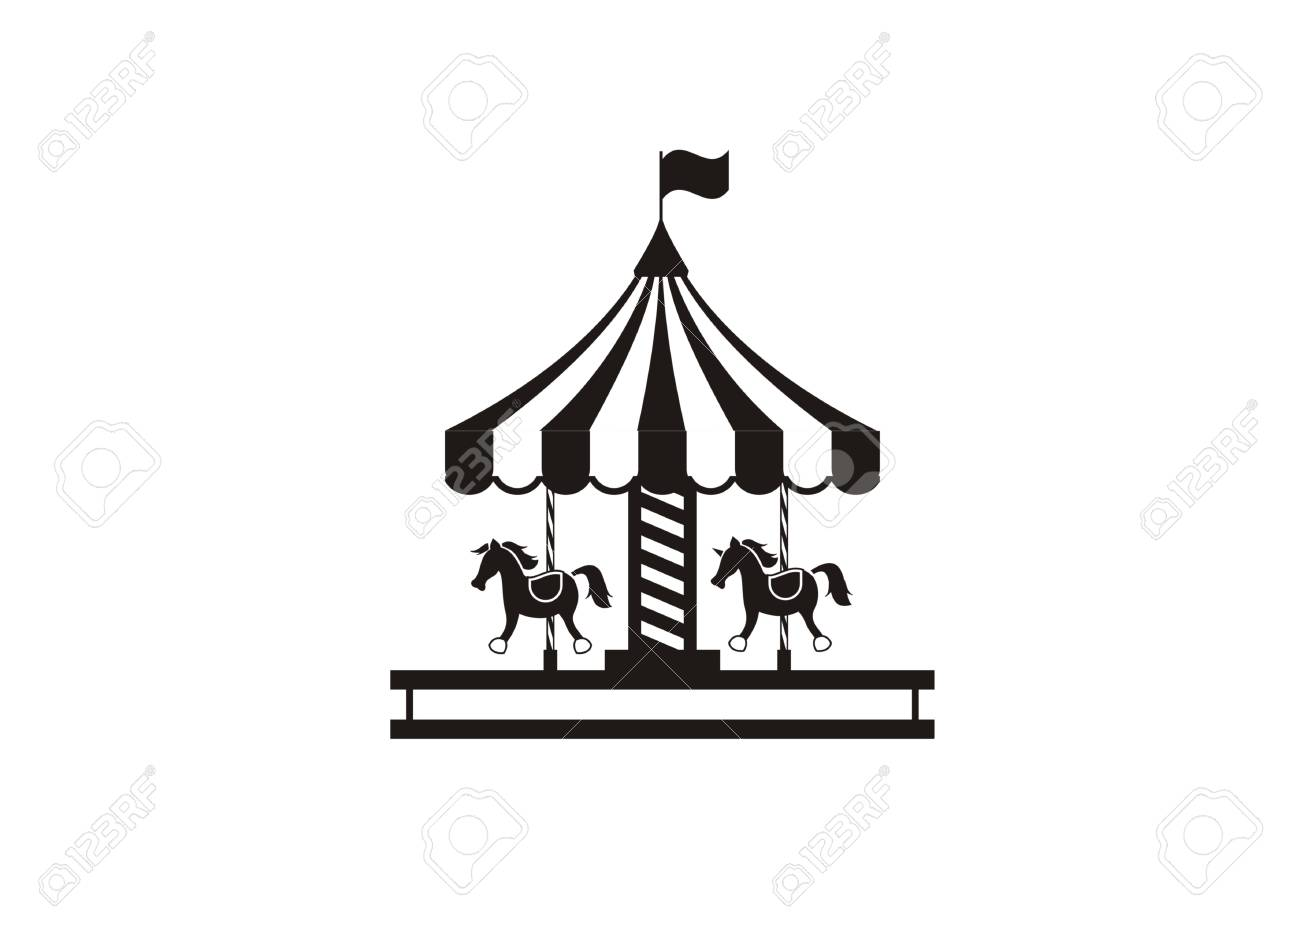 Carousel Simple Illustration Royalty Free Cliparts Vectors And Stock Illustration Image 99335071